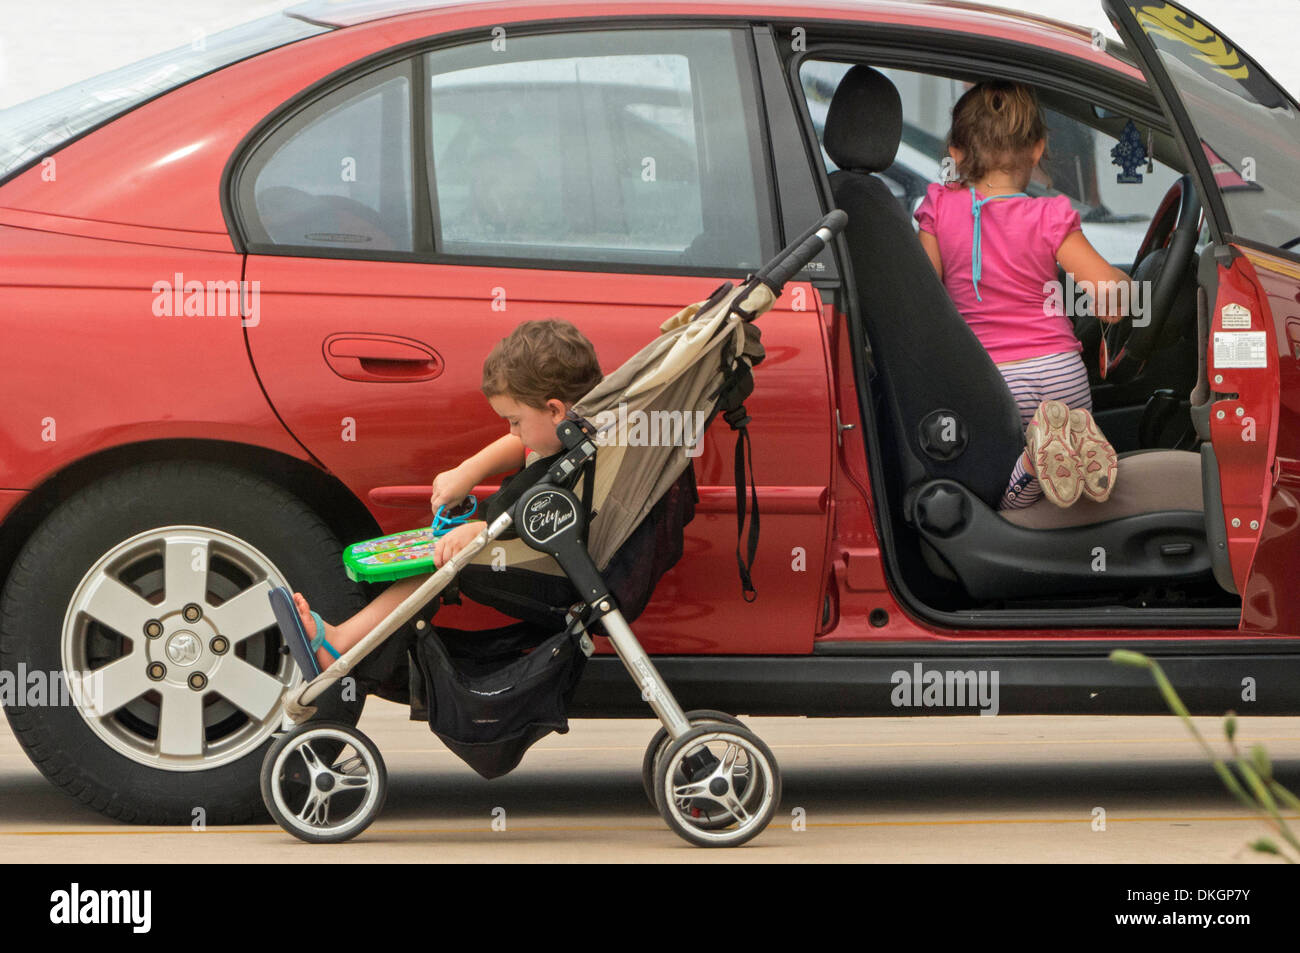 Young children left unattended in and beside open door of car in shopping centre car park - Stock Image